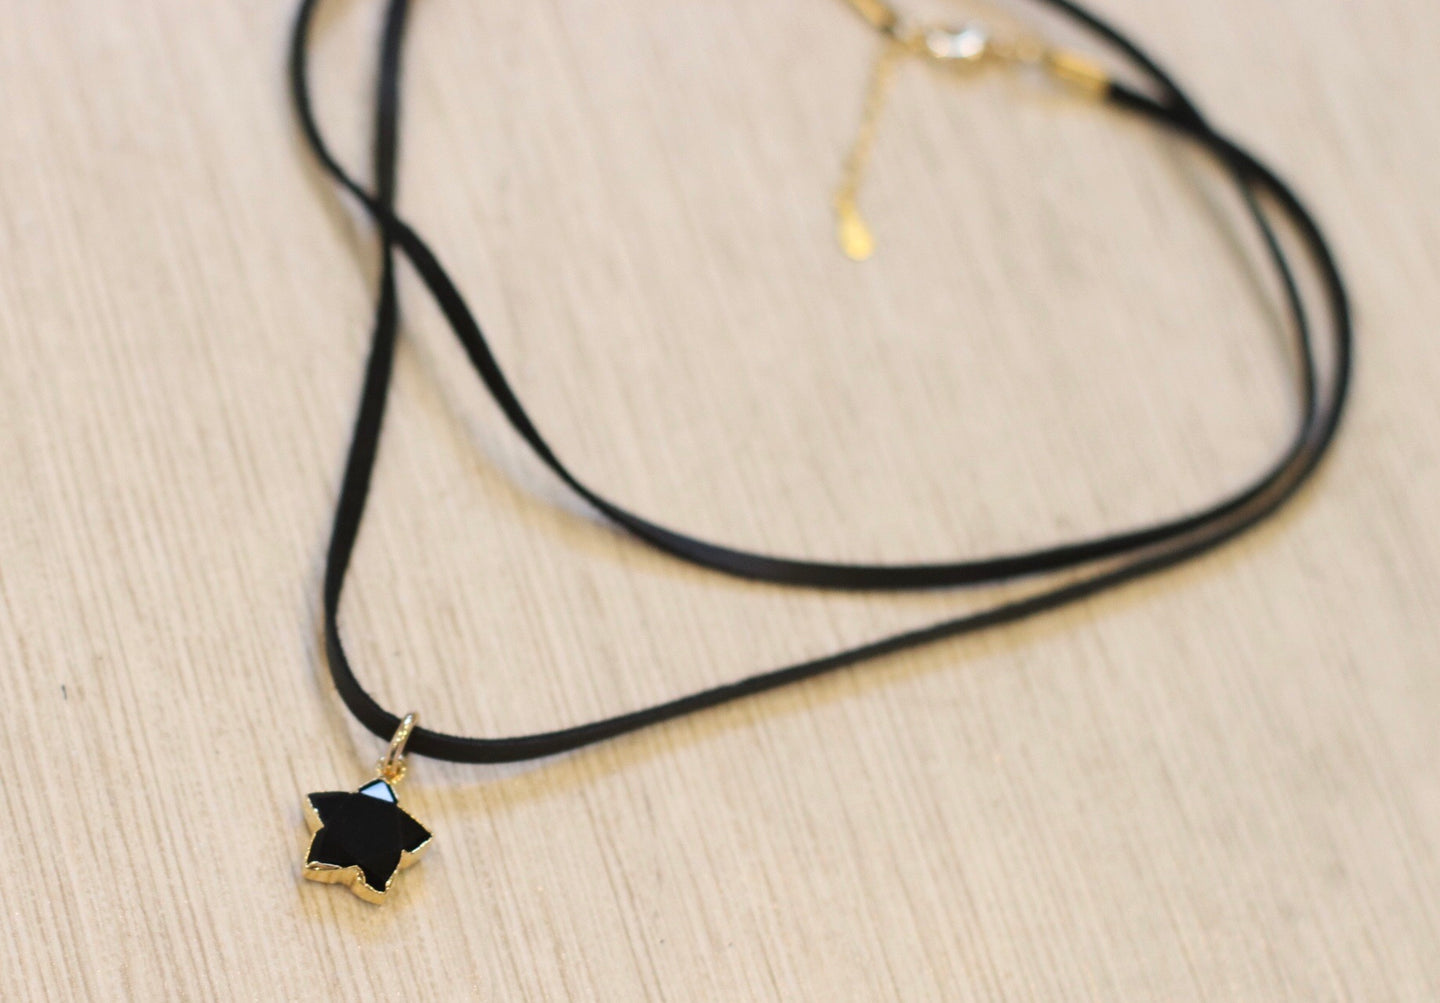 The Coven Necklace